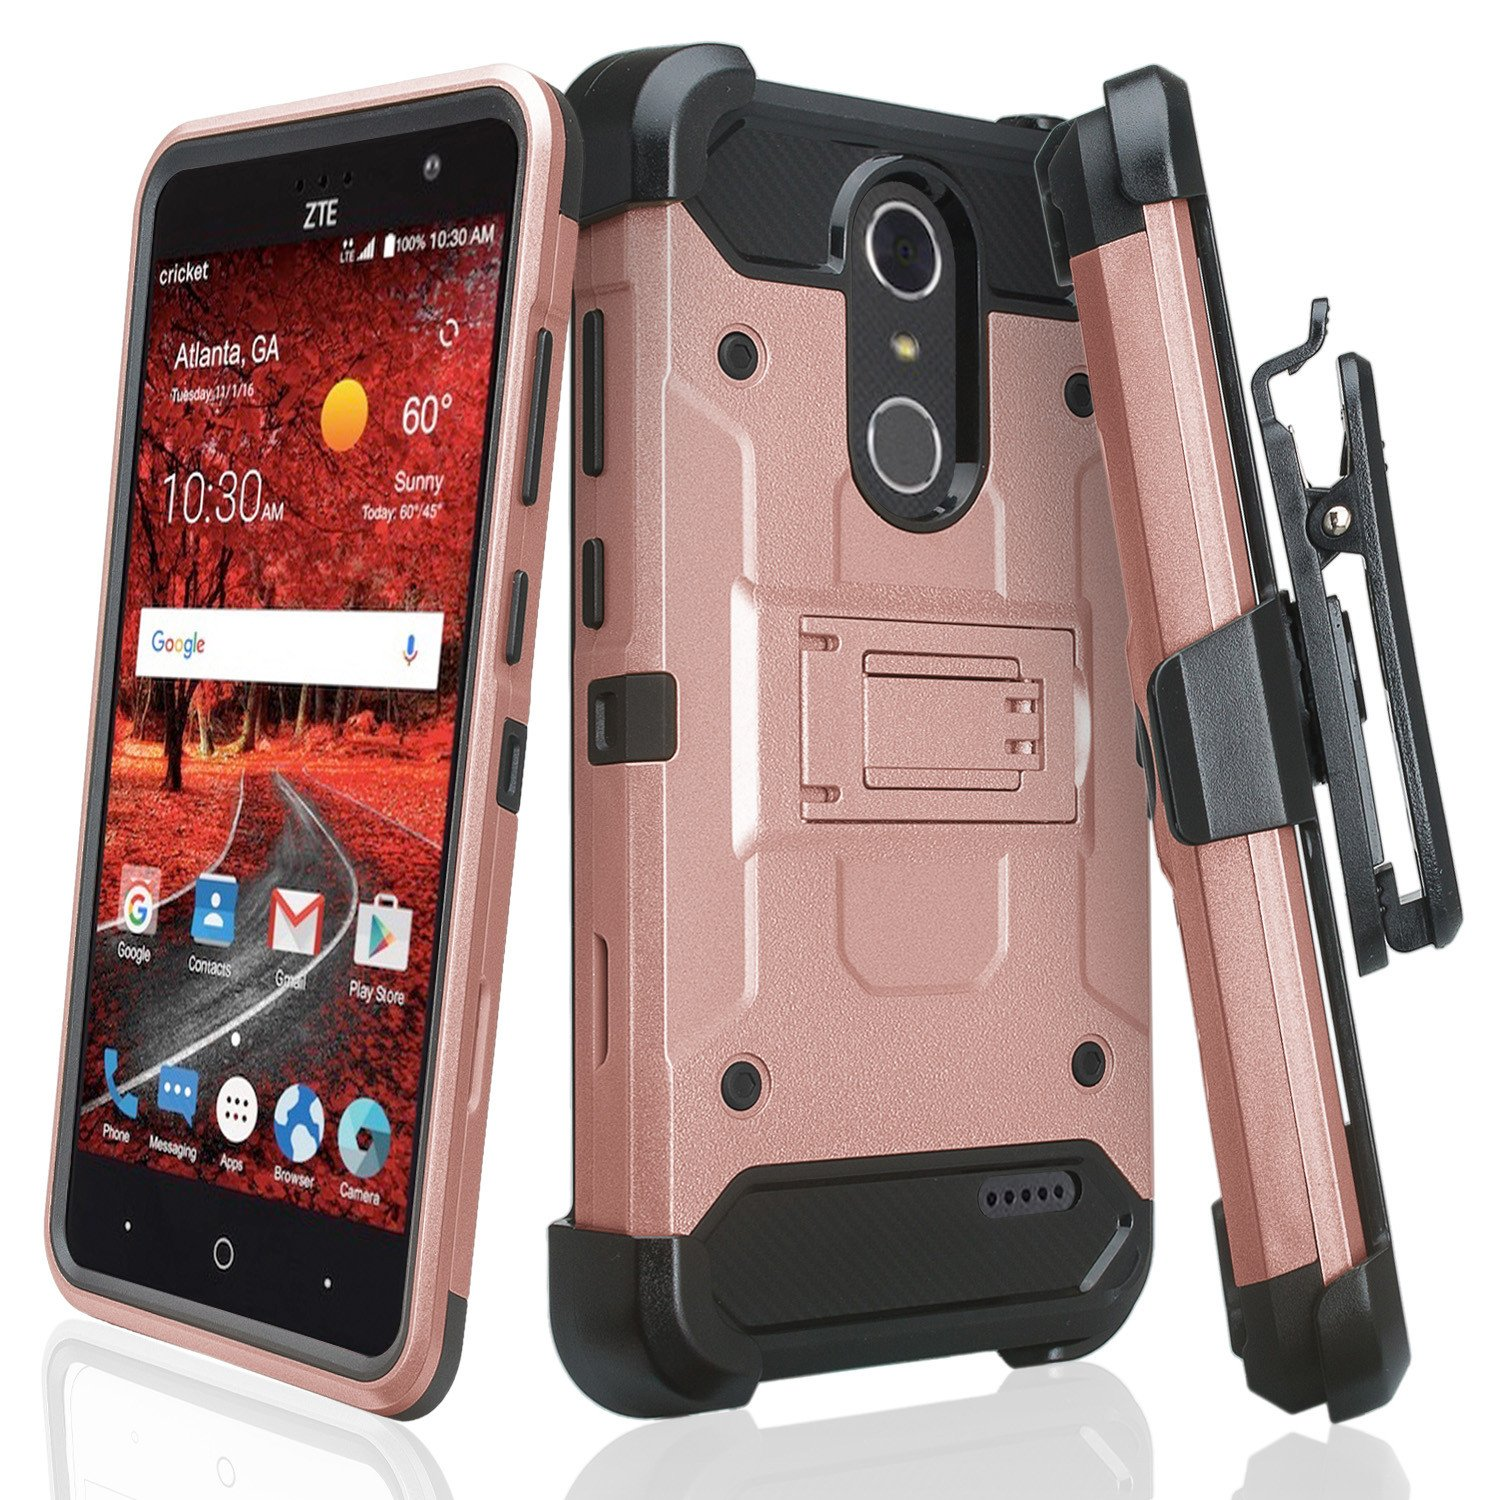 new concept 38bbf 709e1 ZTE Grand X4 Case, ZTE Blade Spark Z971 Cover, Rugged Hybrid [Swivel Belt  Clip] Holster Protector Case [Kickstand] for Grand X 4 - Rose Gold